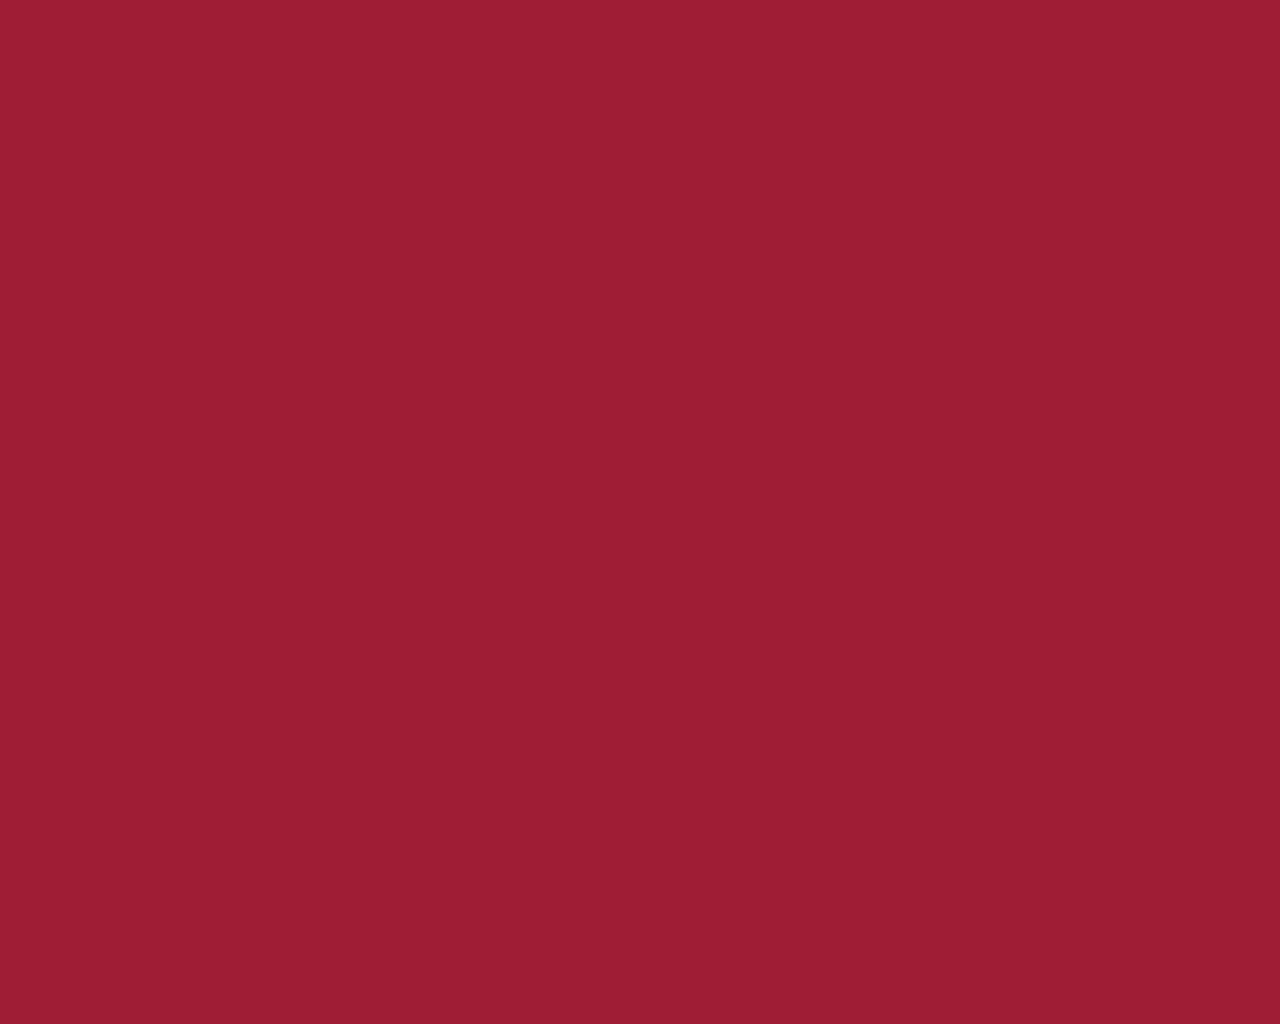 1280x1024 resolution Vivid Burgundy solid color background view 1280x1024